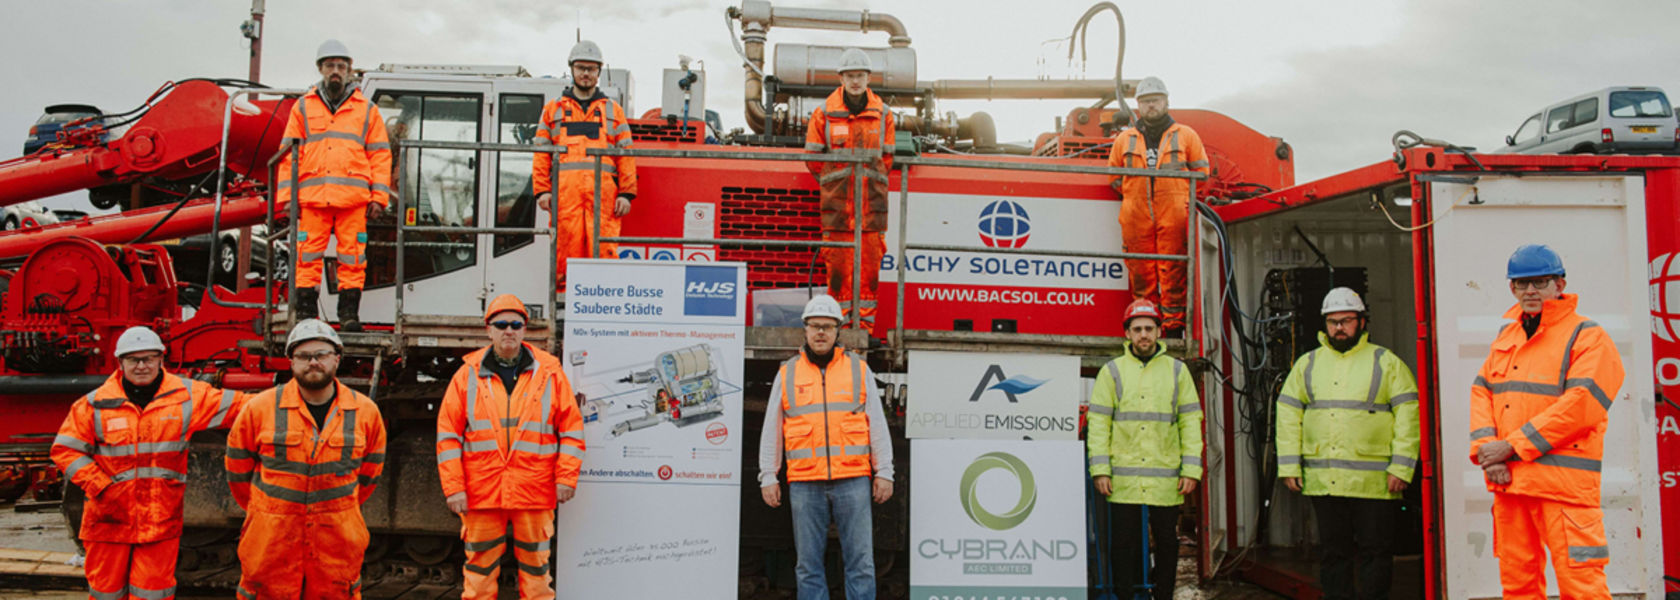 Bachy Soletanche reduces environmental impact of piling rigs